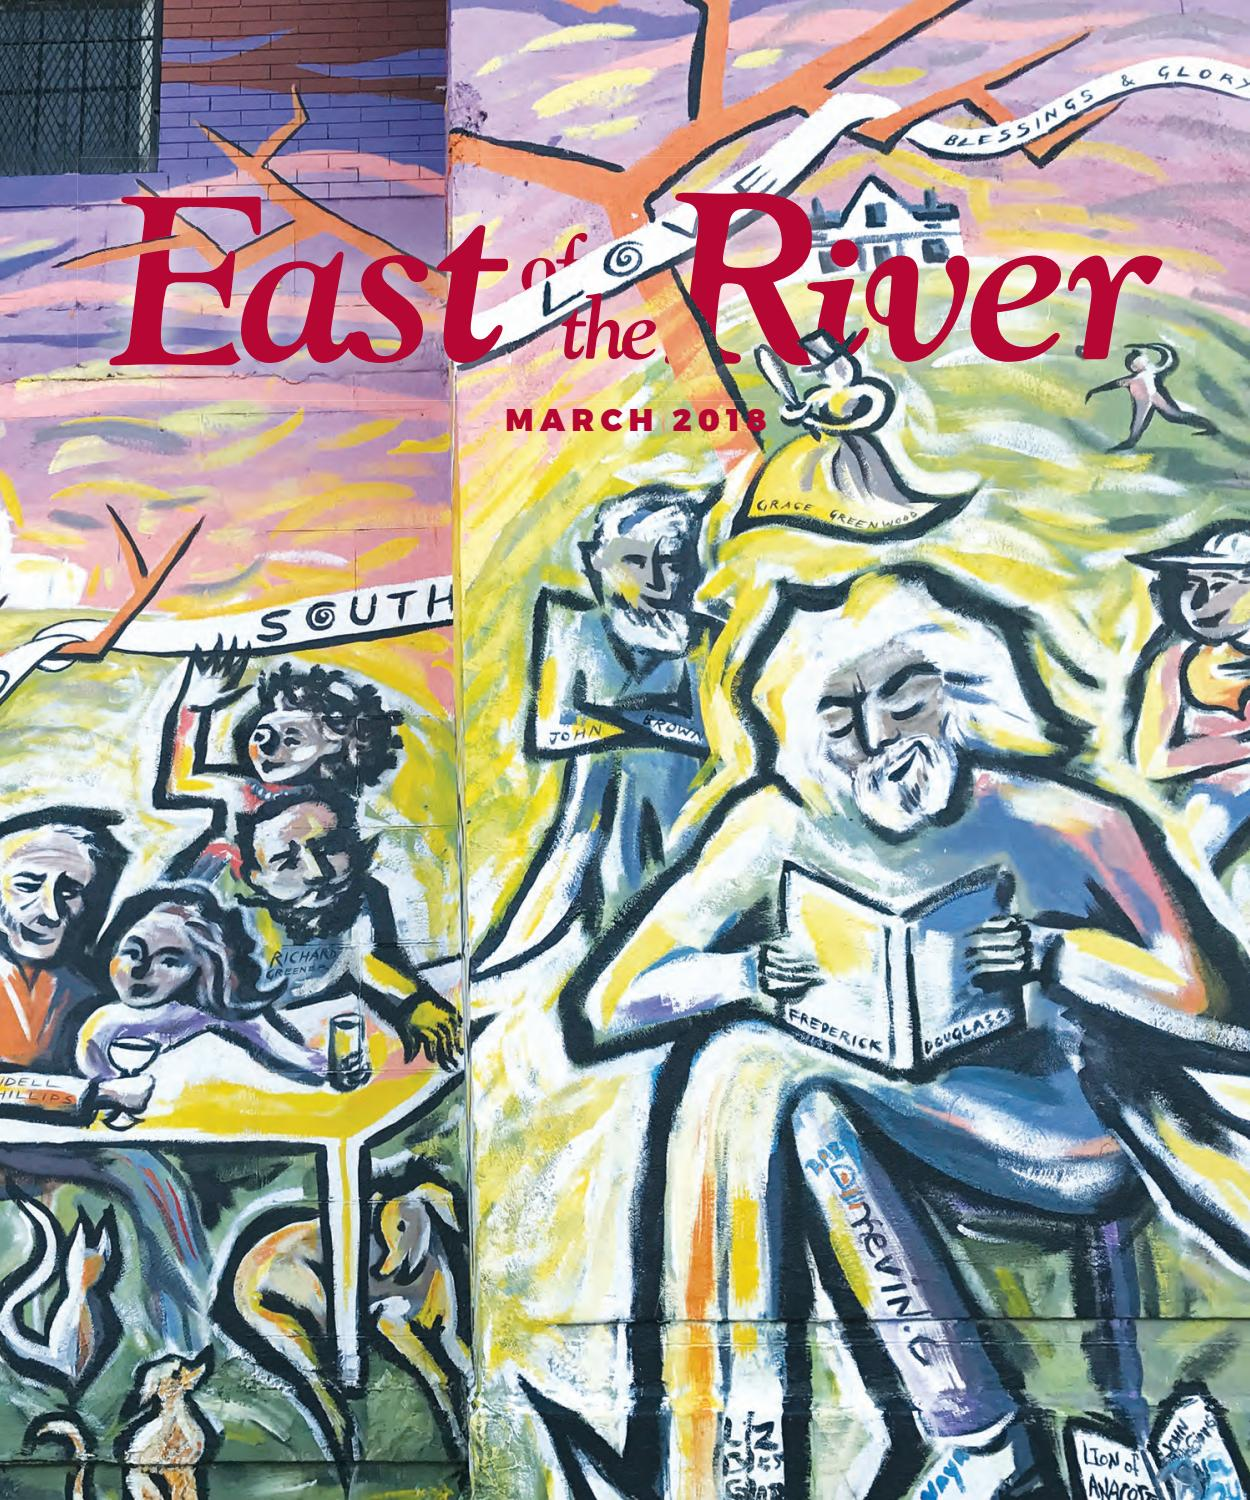 East of the river magazine march 2018 by capital community news issuu